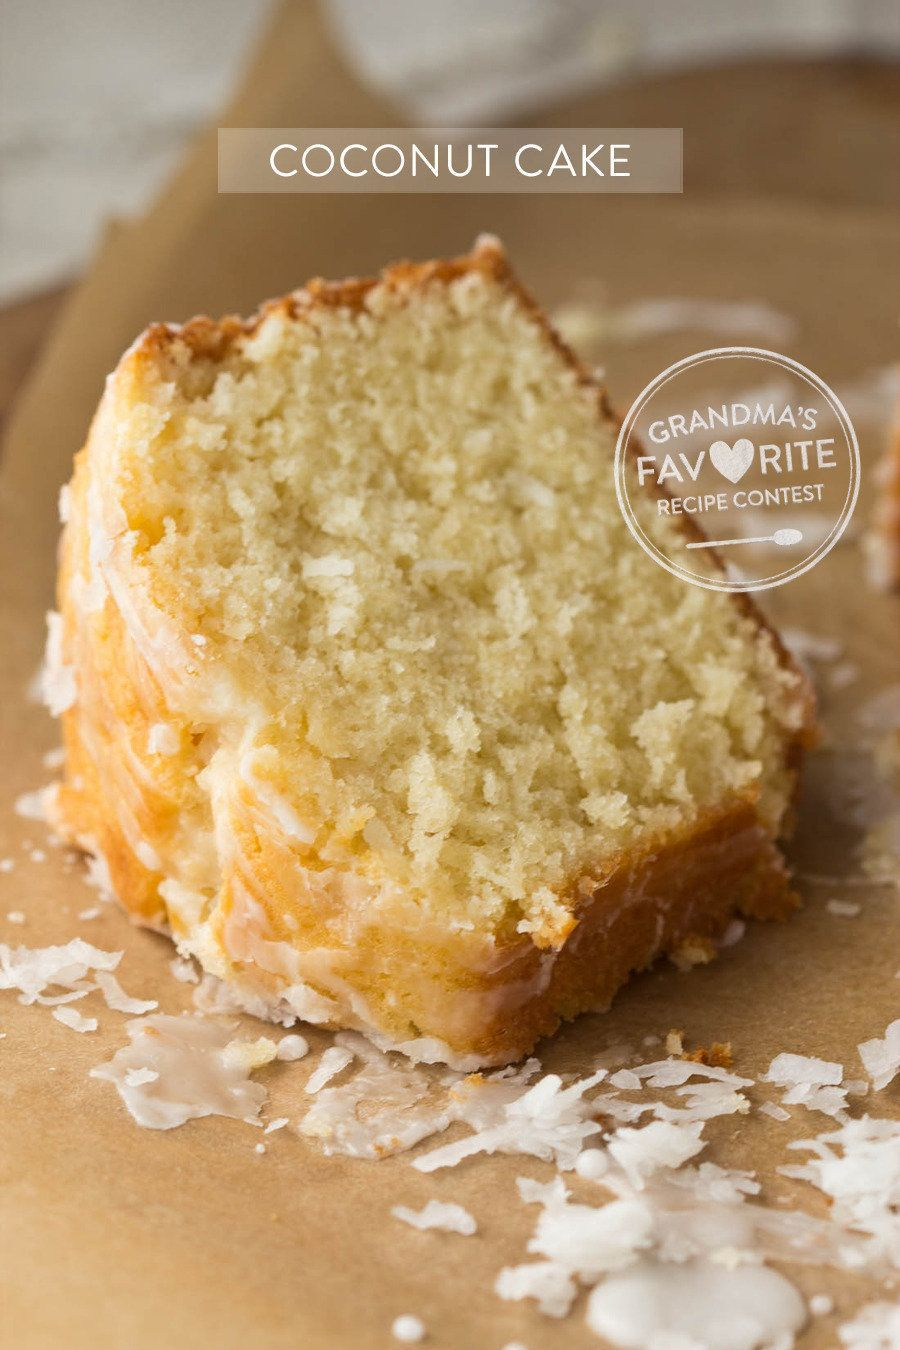 Grandmas Coconut Cake  Sweet Treats + Cakes  Coconut, grandmas coconut cake sweet treats cakes coconut grandmas coconut cake. . coconut cakes coconut cream bundt cake recipe coconut desserts 12 egg pound cake recipe peach cobbler pound cake recipe cake mix carrot cake recipe pound cake recipes cake mix recipes coconut cake frosting. . coconut cream cheese pound cake is a soft sweet pound cake with coconut throughout. this rich cake recipe ., grandmas coconut pound cake sweet treats coconut #peachcobblerpoundcake